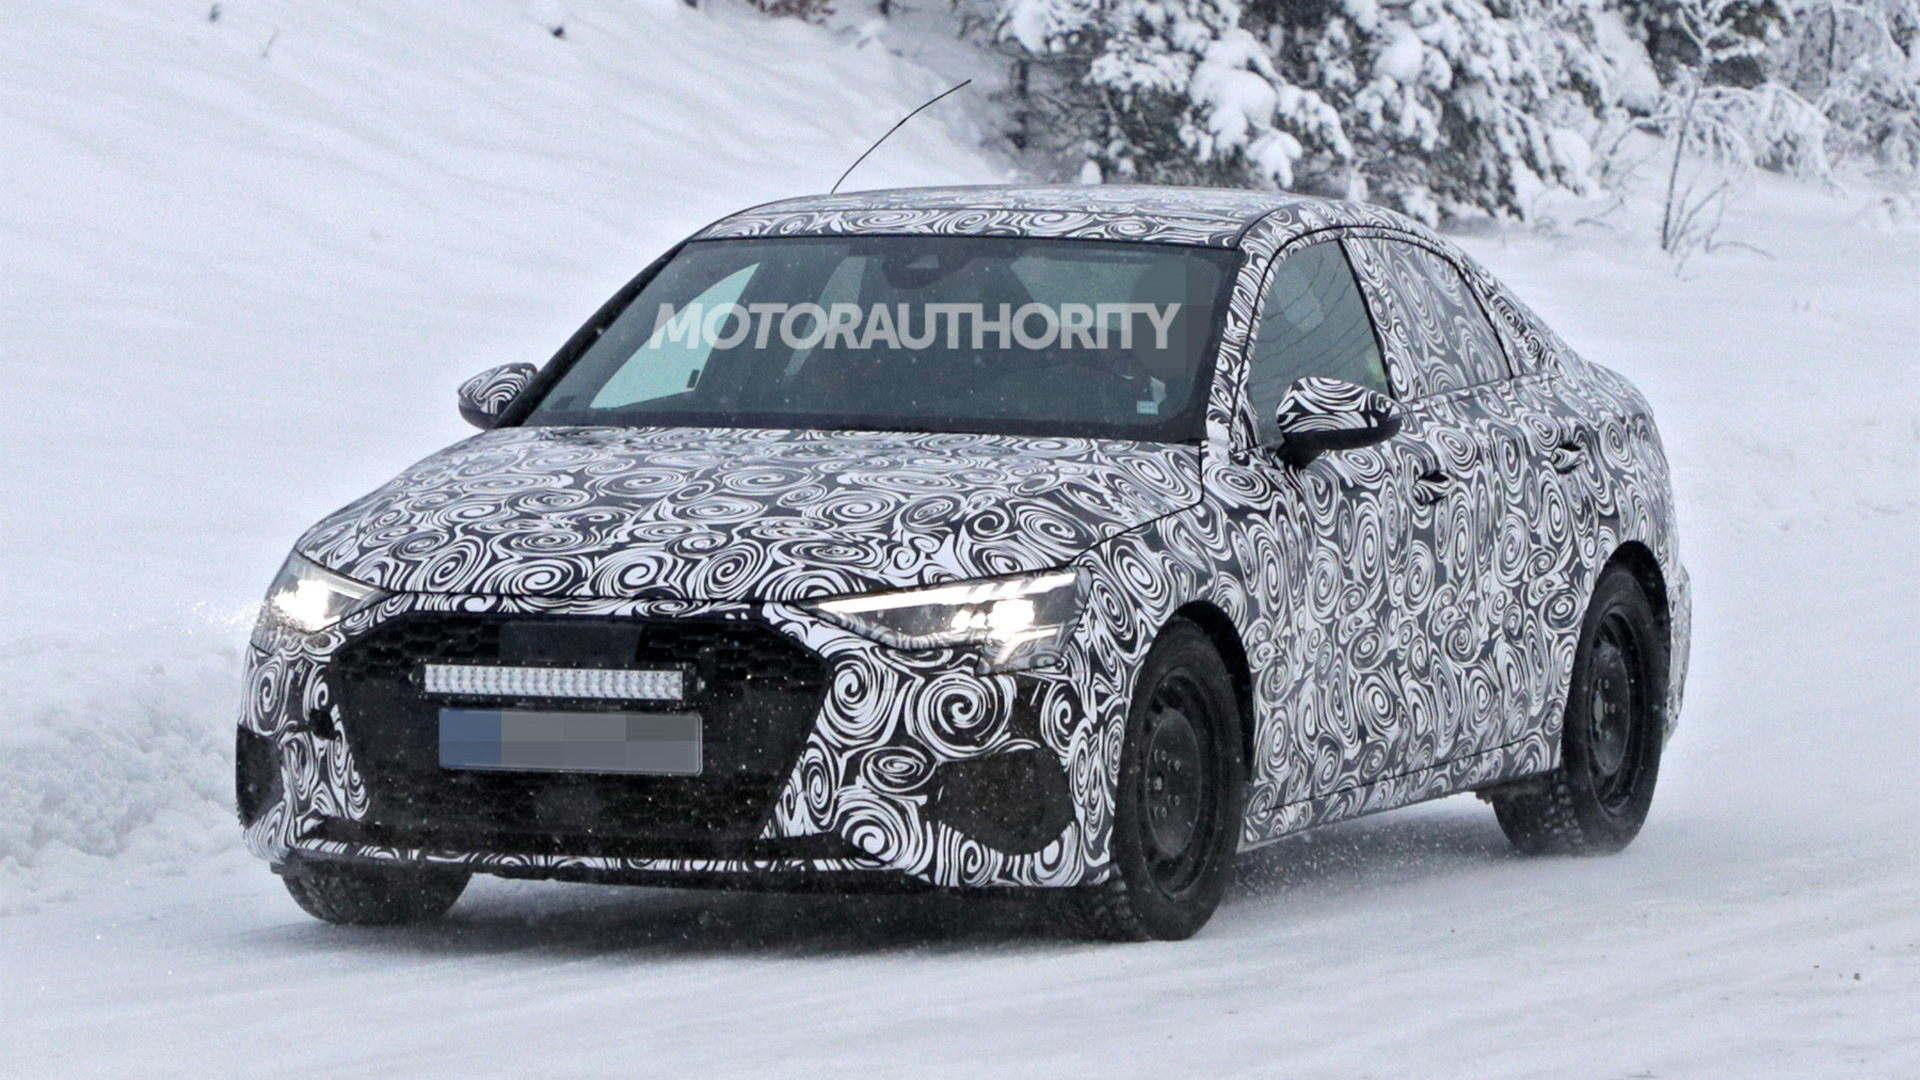 2021 Audi A3 spy shots - Photo credit: S. Baldauf/SB-Medien